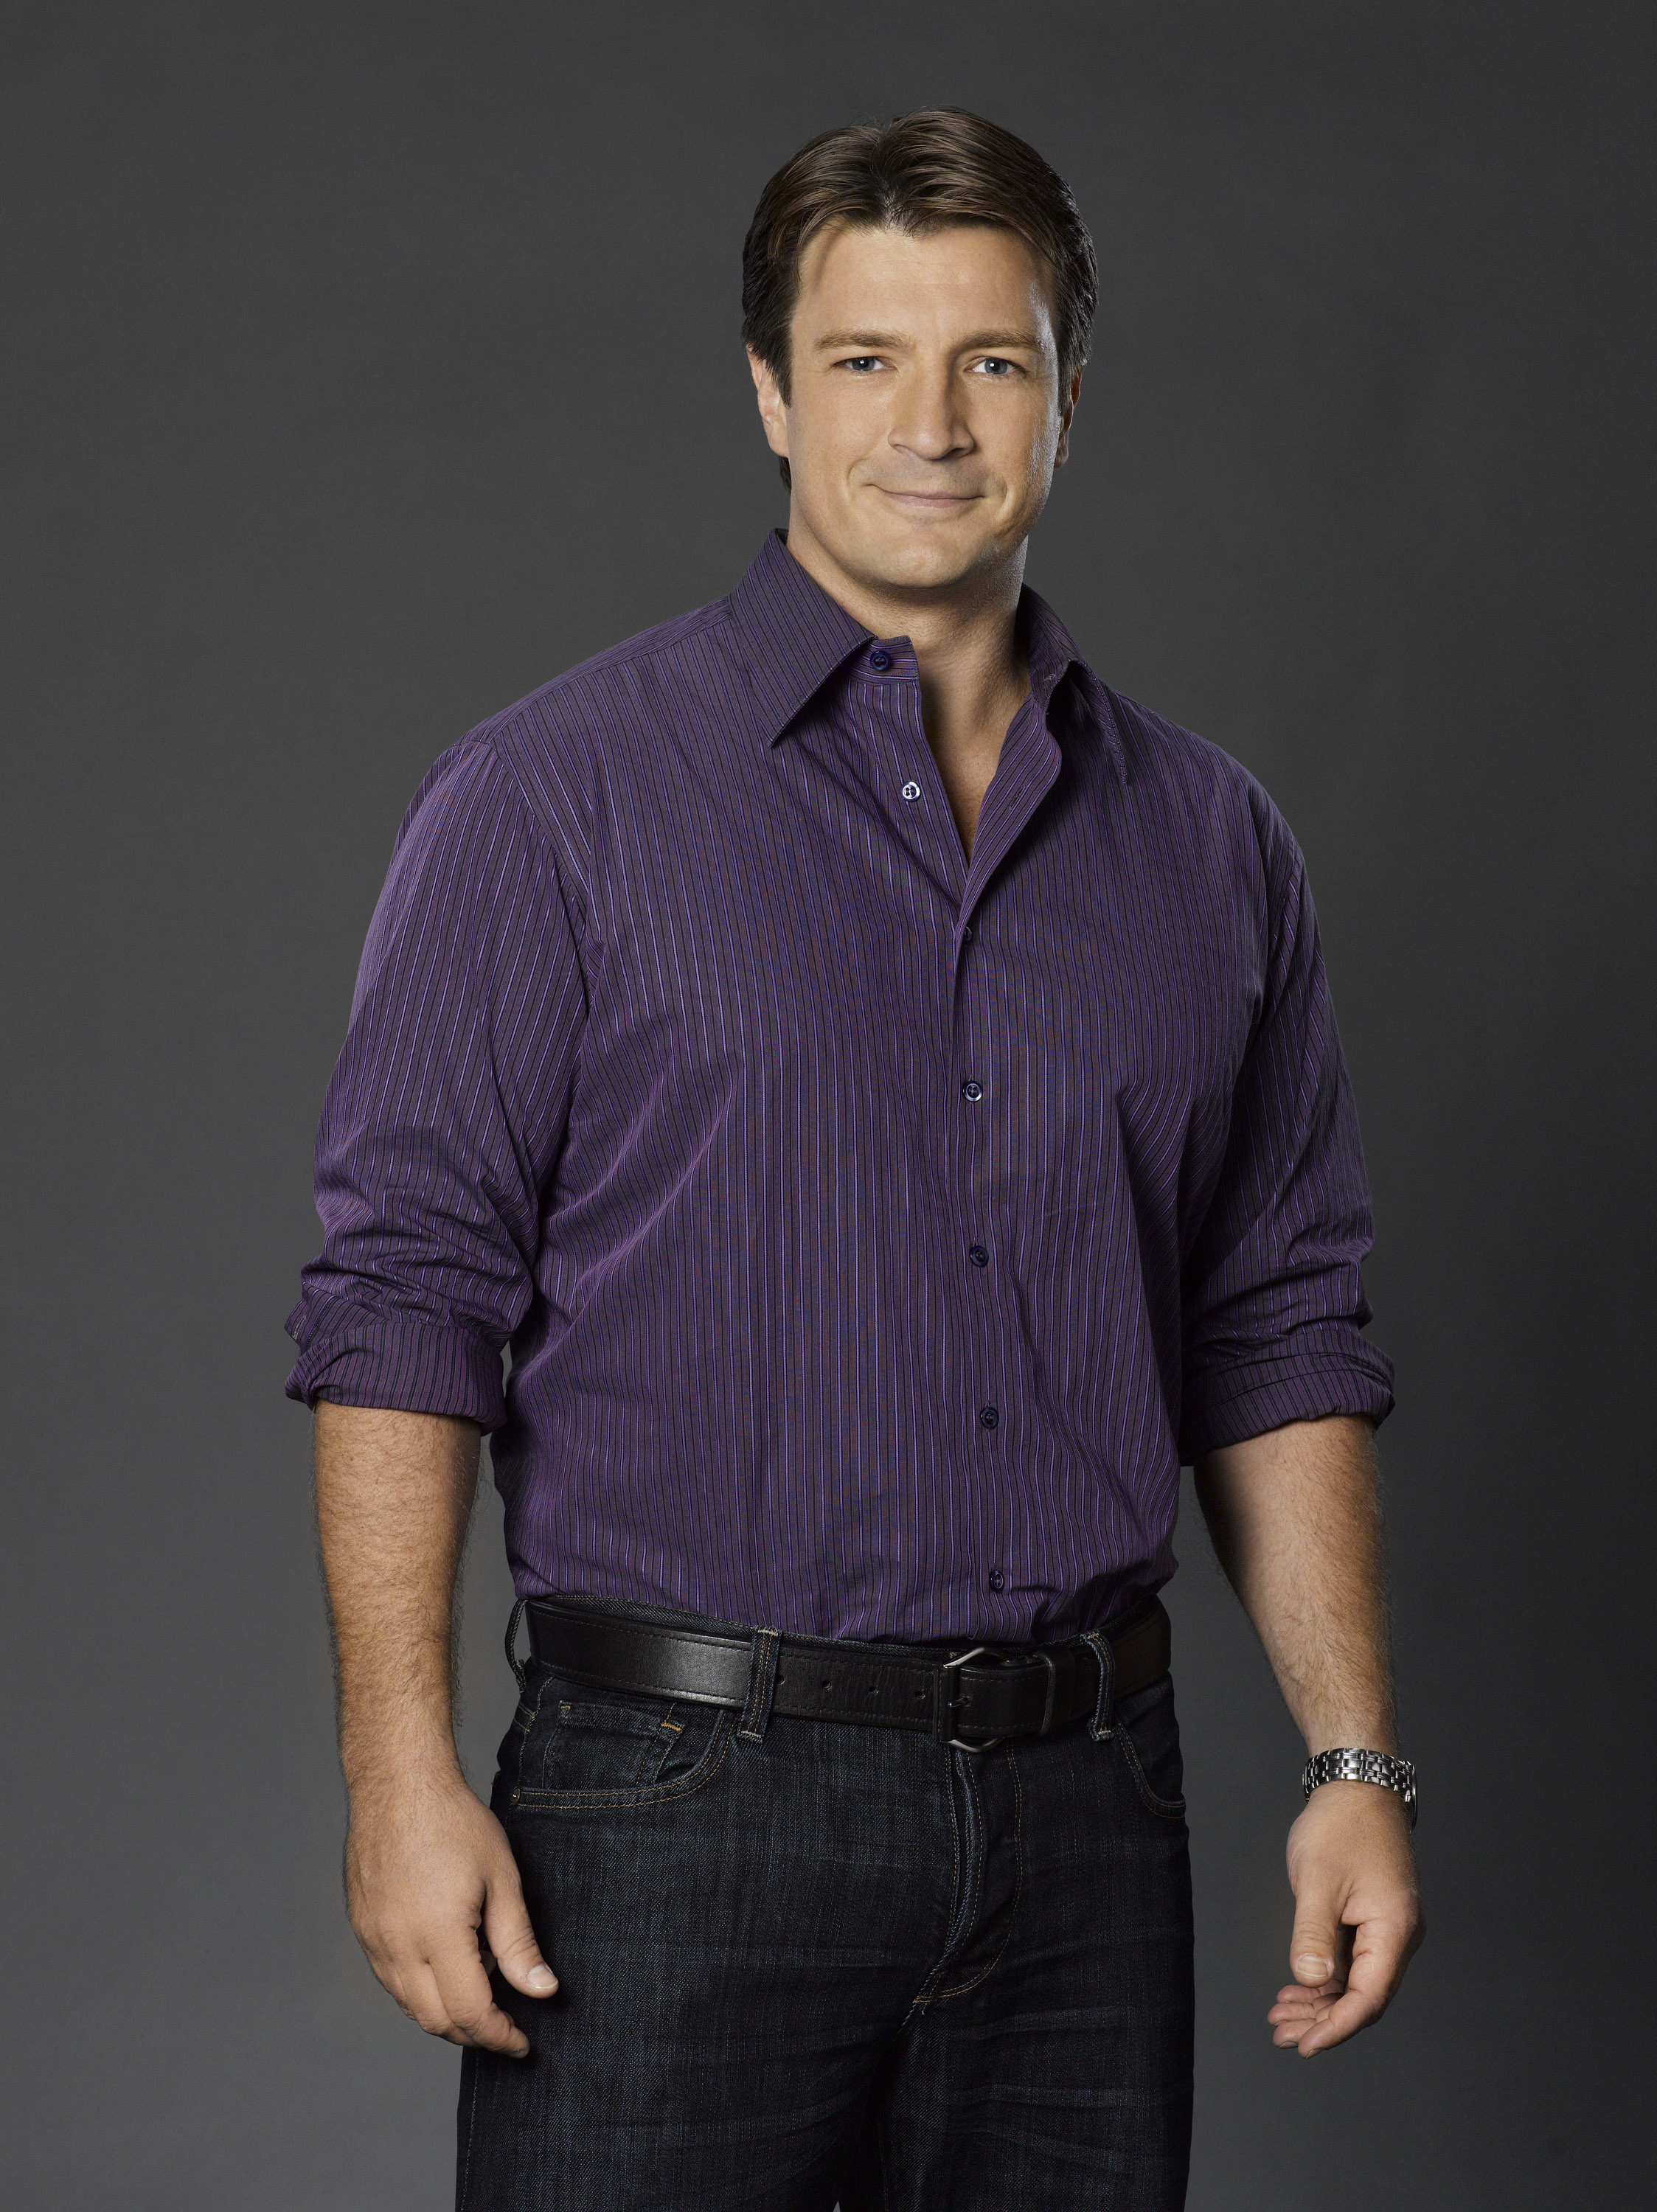 Nathan Fillion photo, pics, wallpaper - photo #